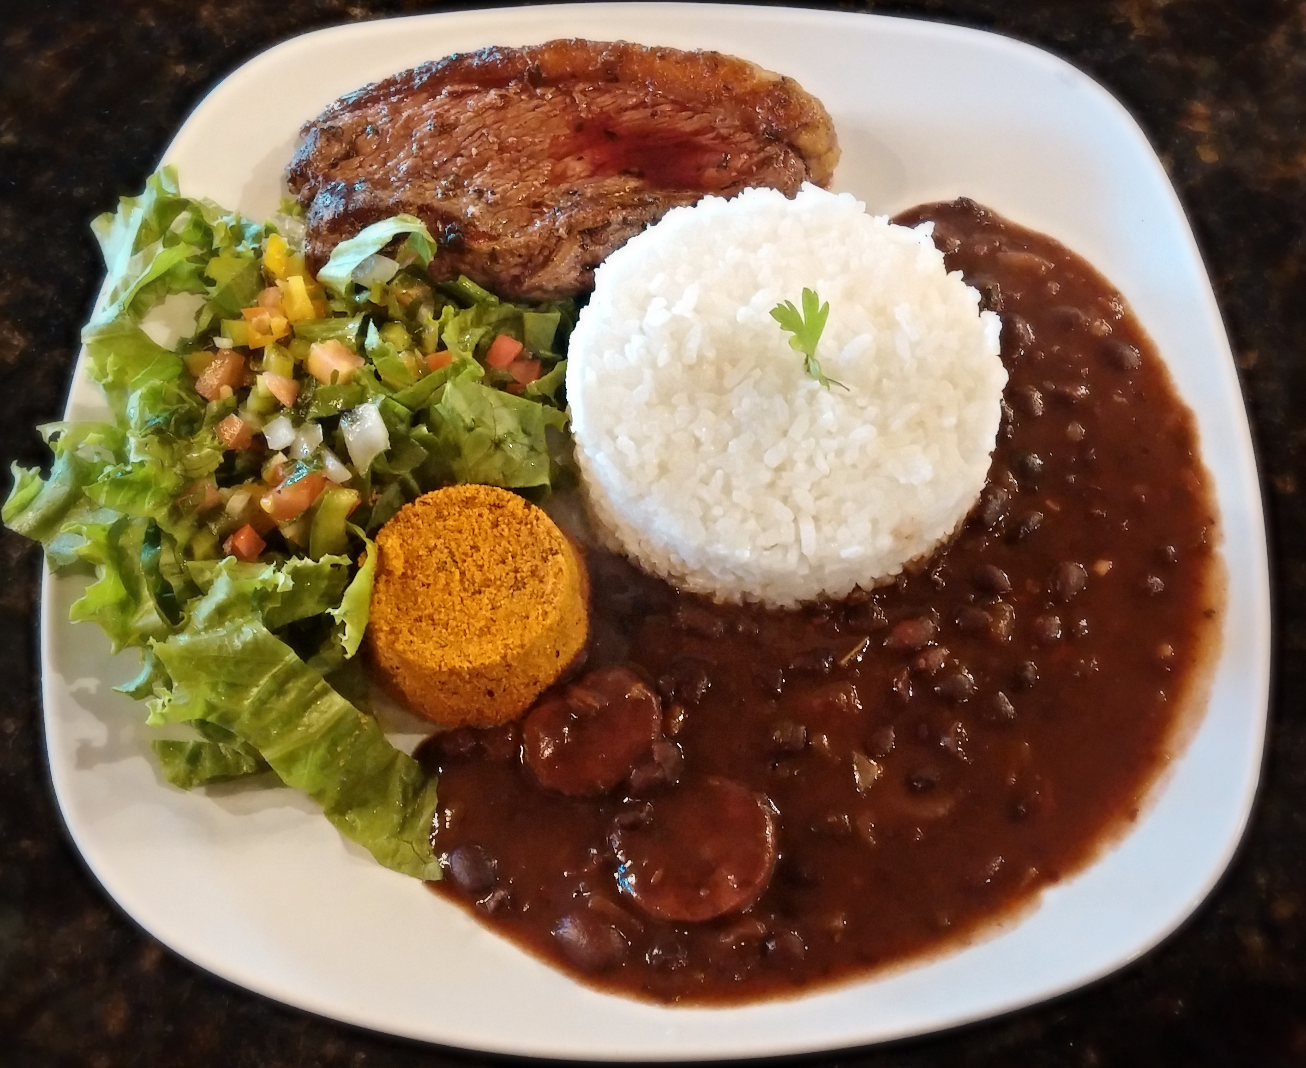 Picanha Square Meal served with a side of Jasmine rice, Gaucho's signature beans stew, House salad and Farofa.